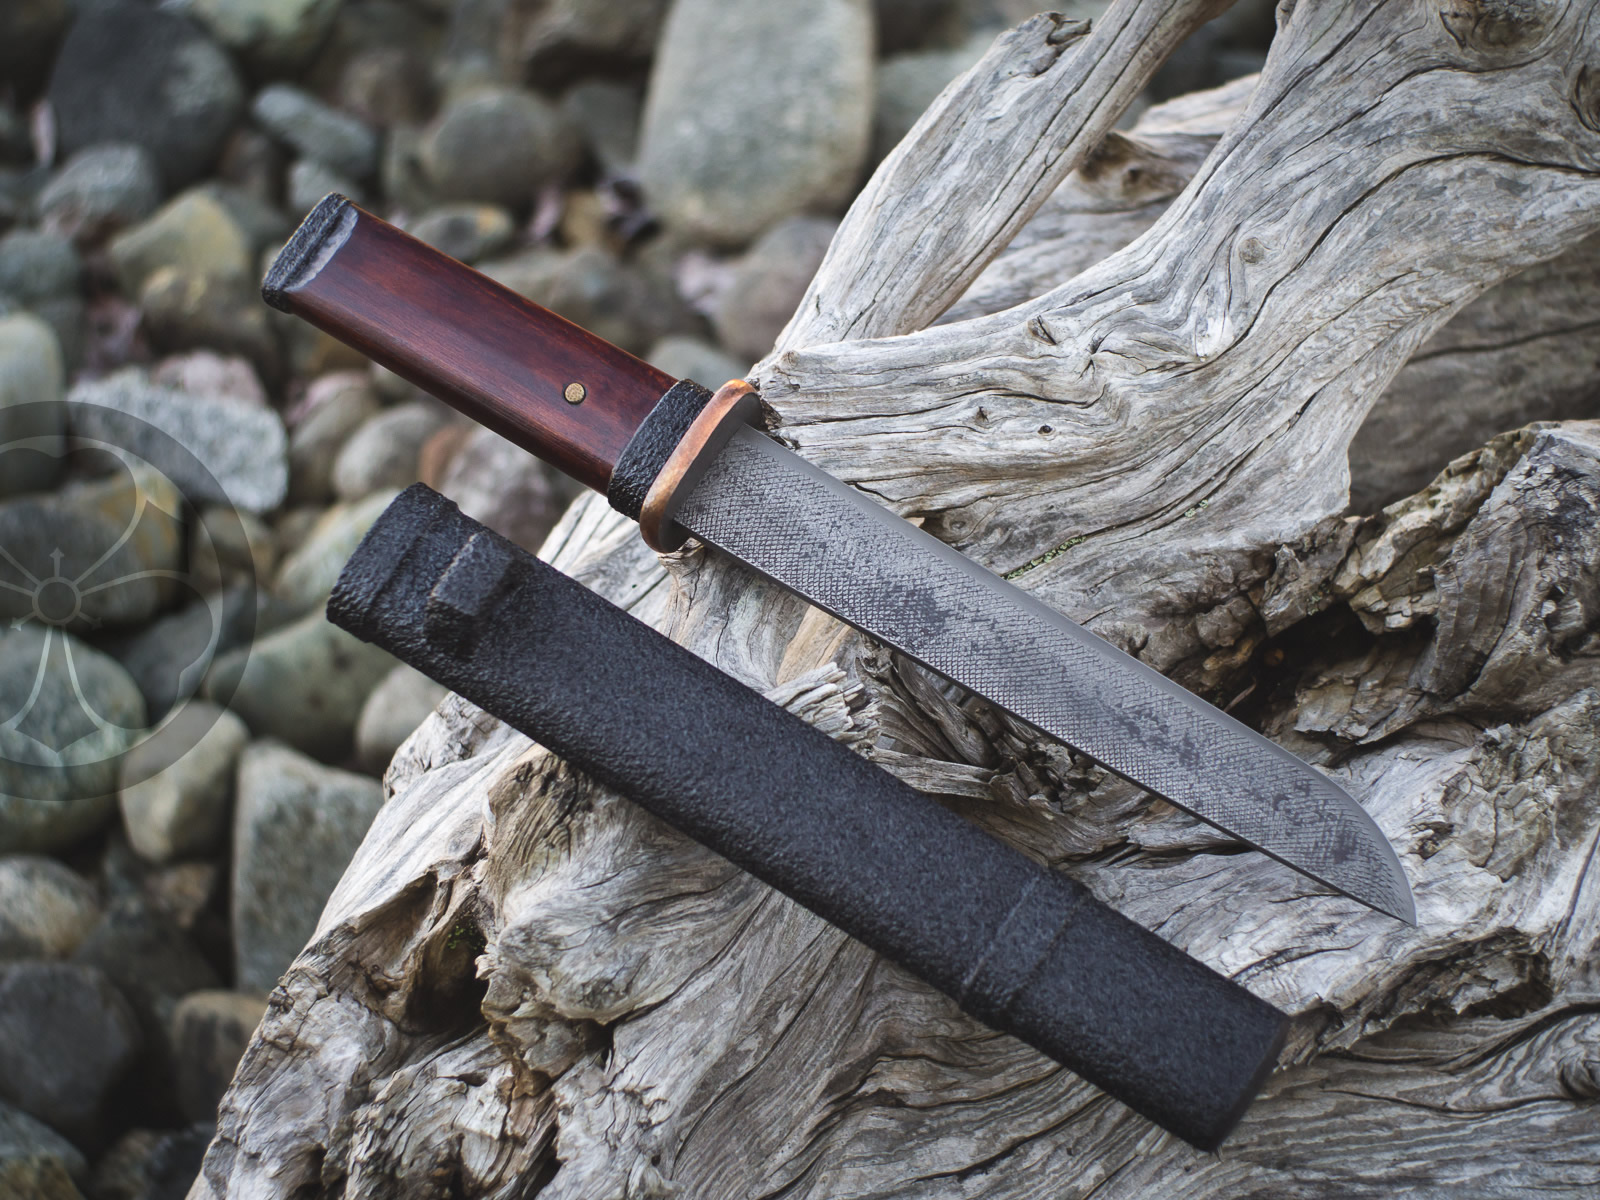 Island Blacksmith: Charcoal forged knives from reclaimed materials.